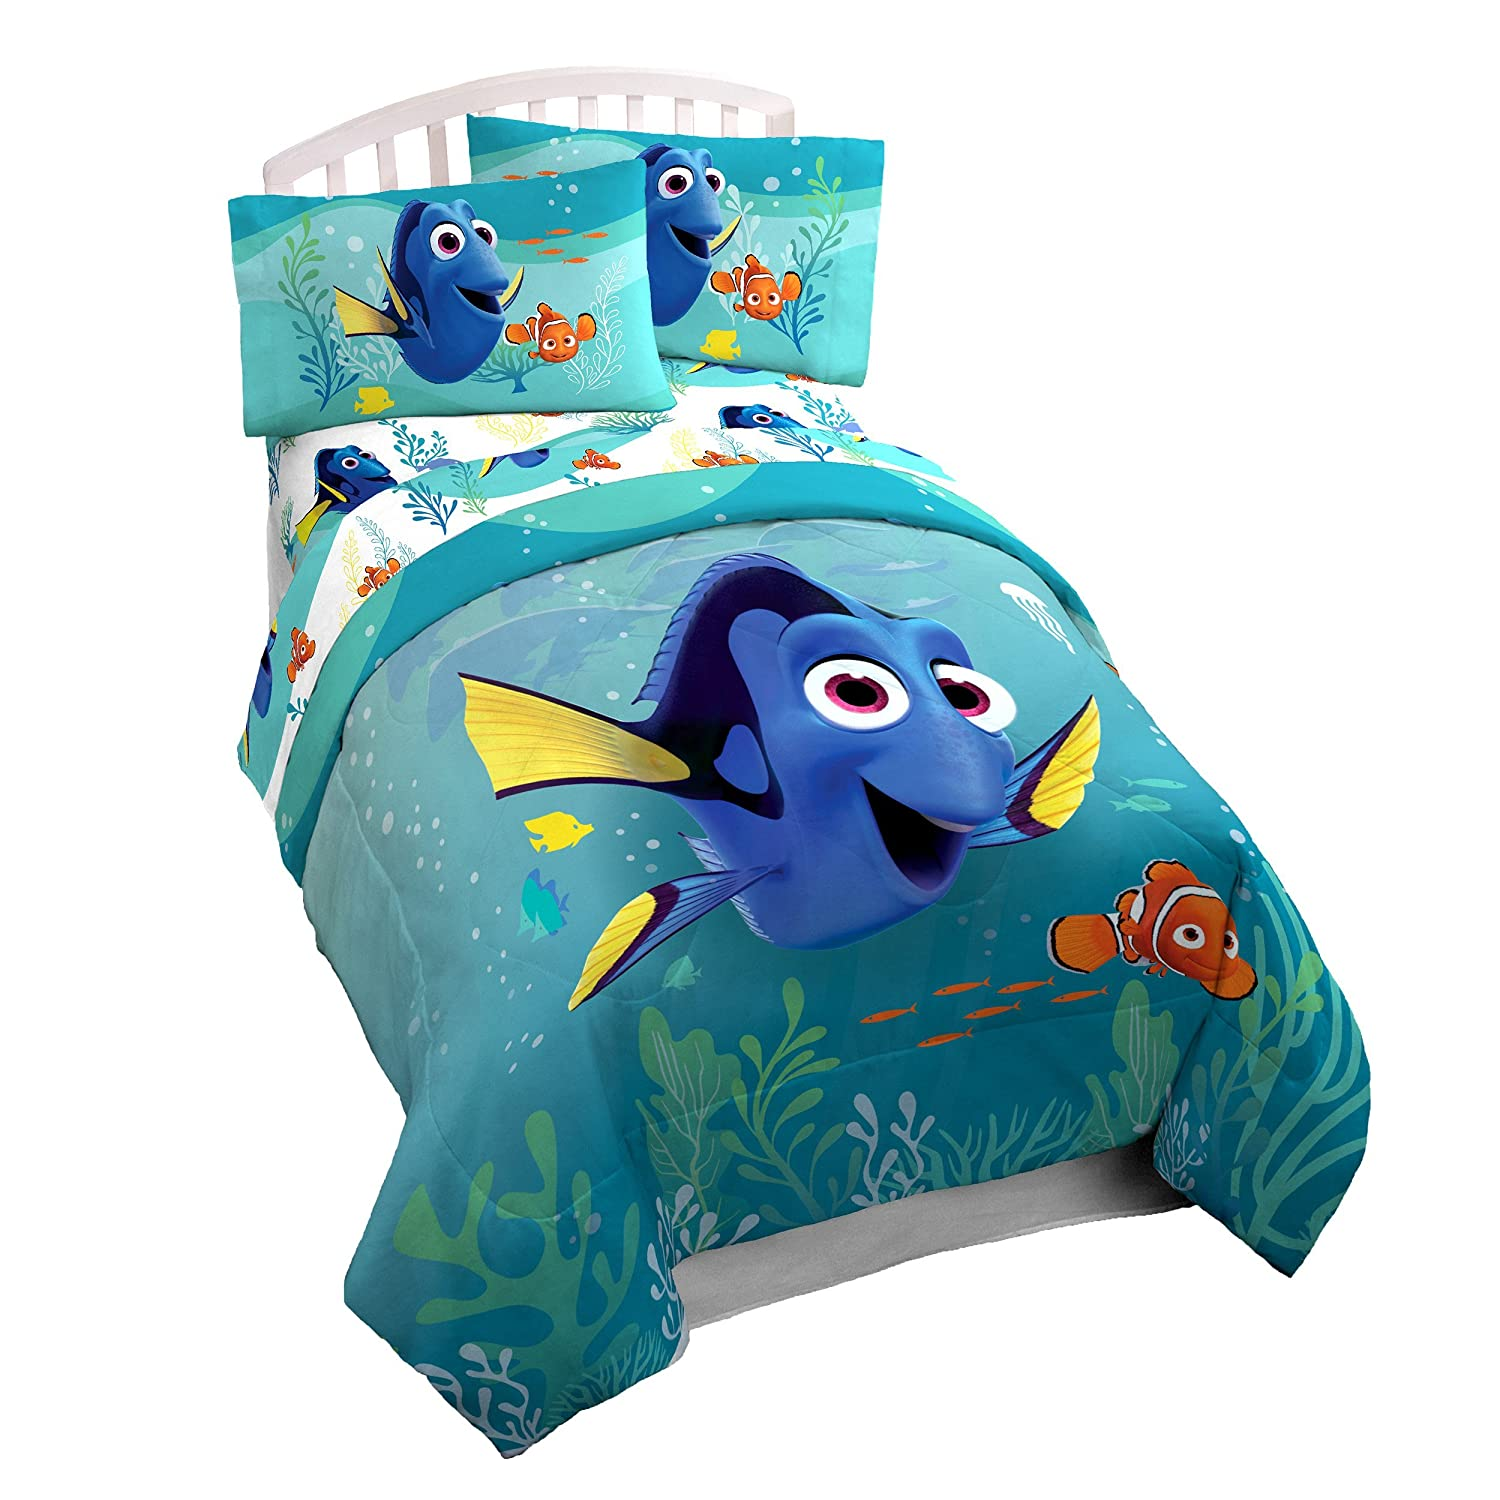 Disney Pixar Finding Dory Stingray Twin Comforter - Super Soft Kids Reversible Bedding features Dory and Nemo - Fade Resistant Polyester Microfiber Fill (Official Disney Pixar Product)